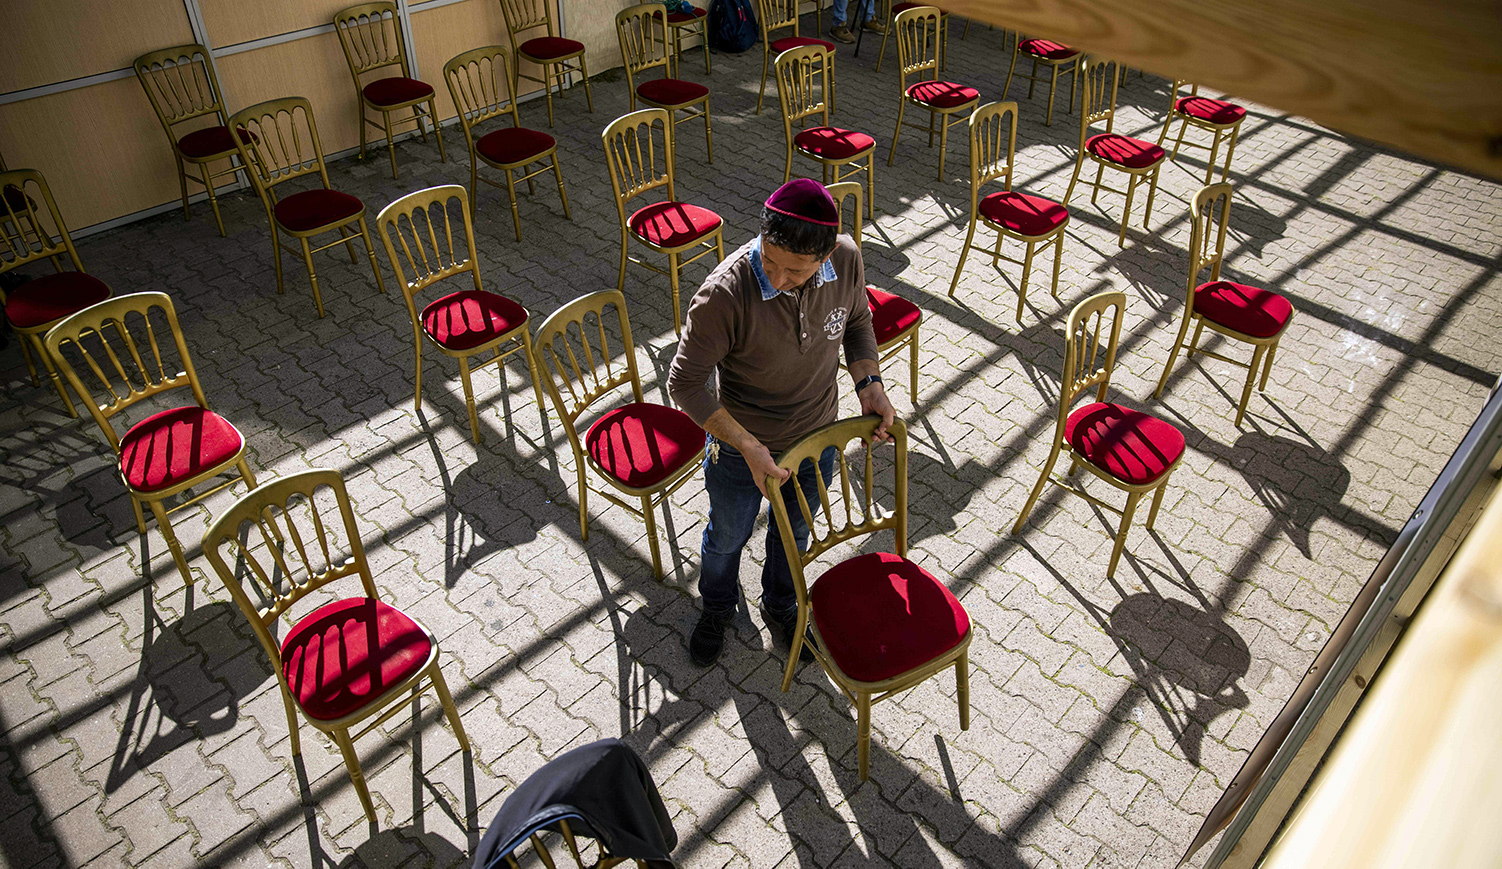 A man setting up for outdoor services on September 18, 2020. ODD ANDERSEN/AFP via Getty Images.